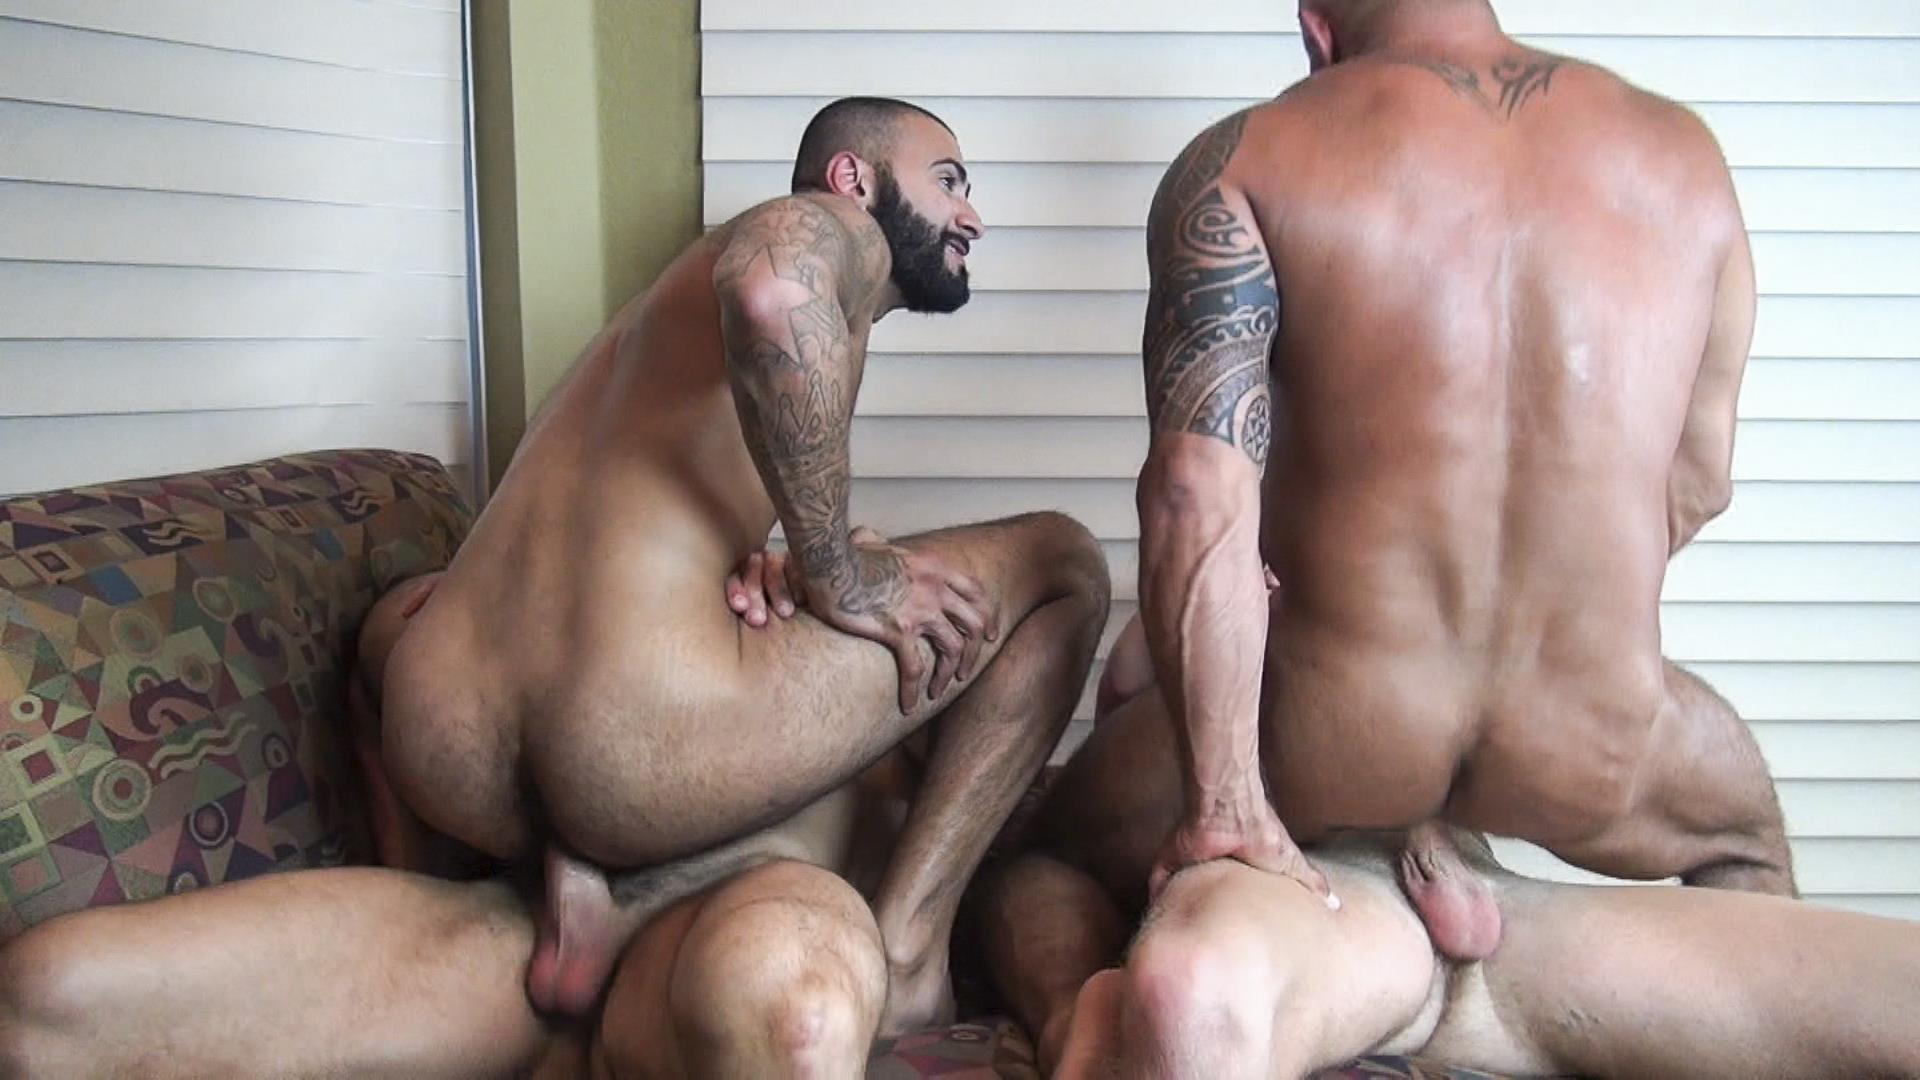 Raw-Fuck-Club-Vic-Rocco-and-Rikk-York-and-Billy-Warren-and-Job-Galt-Bareback-Daddy-Amateur-Gay-Porn-13 Four Hairy Muscle Daddies In A Bareback Fuck Fest Orgy